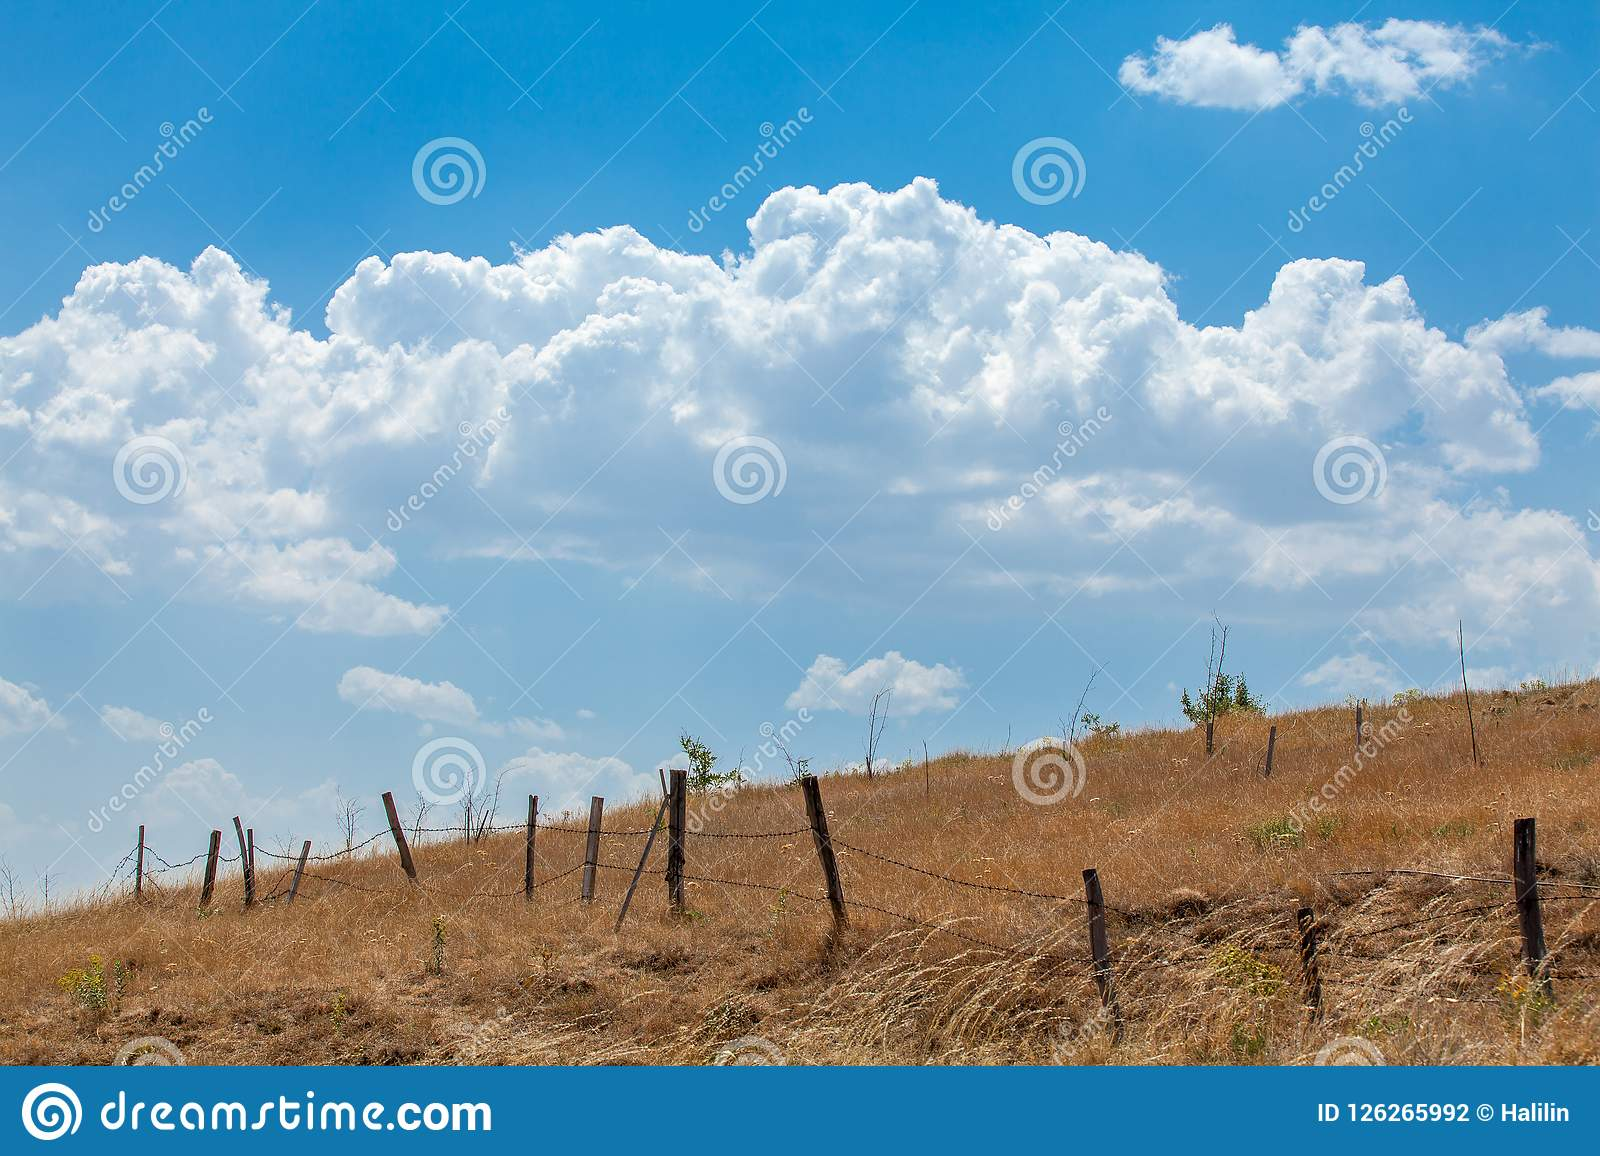 Barbed Wire Fenceline And Blue Sky Stock Photo - Image of breeze ...